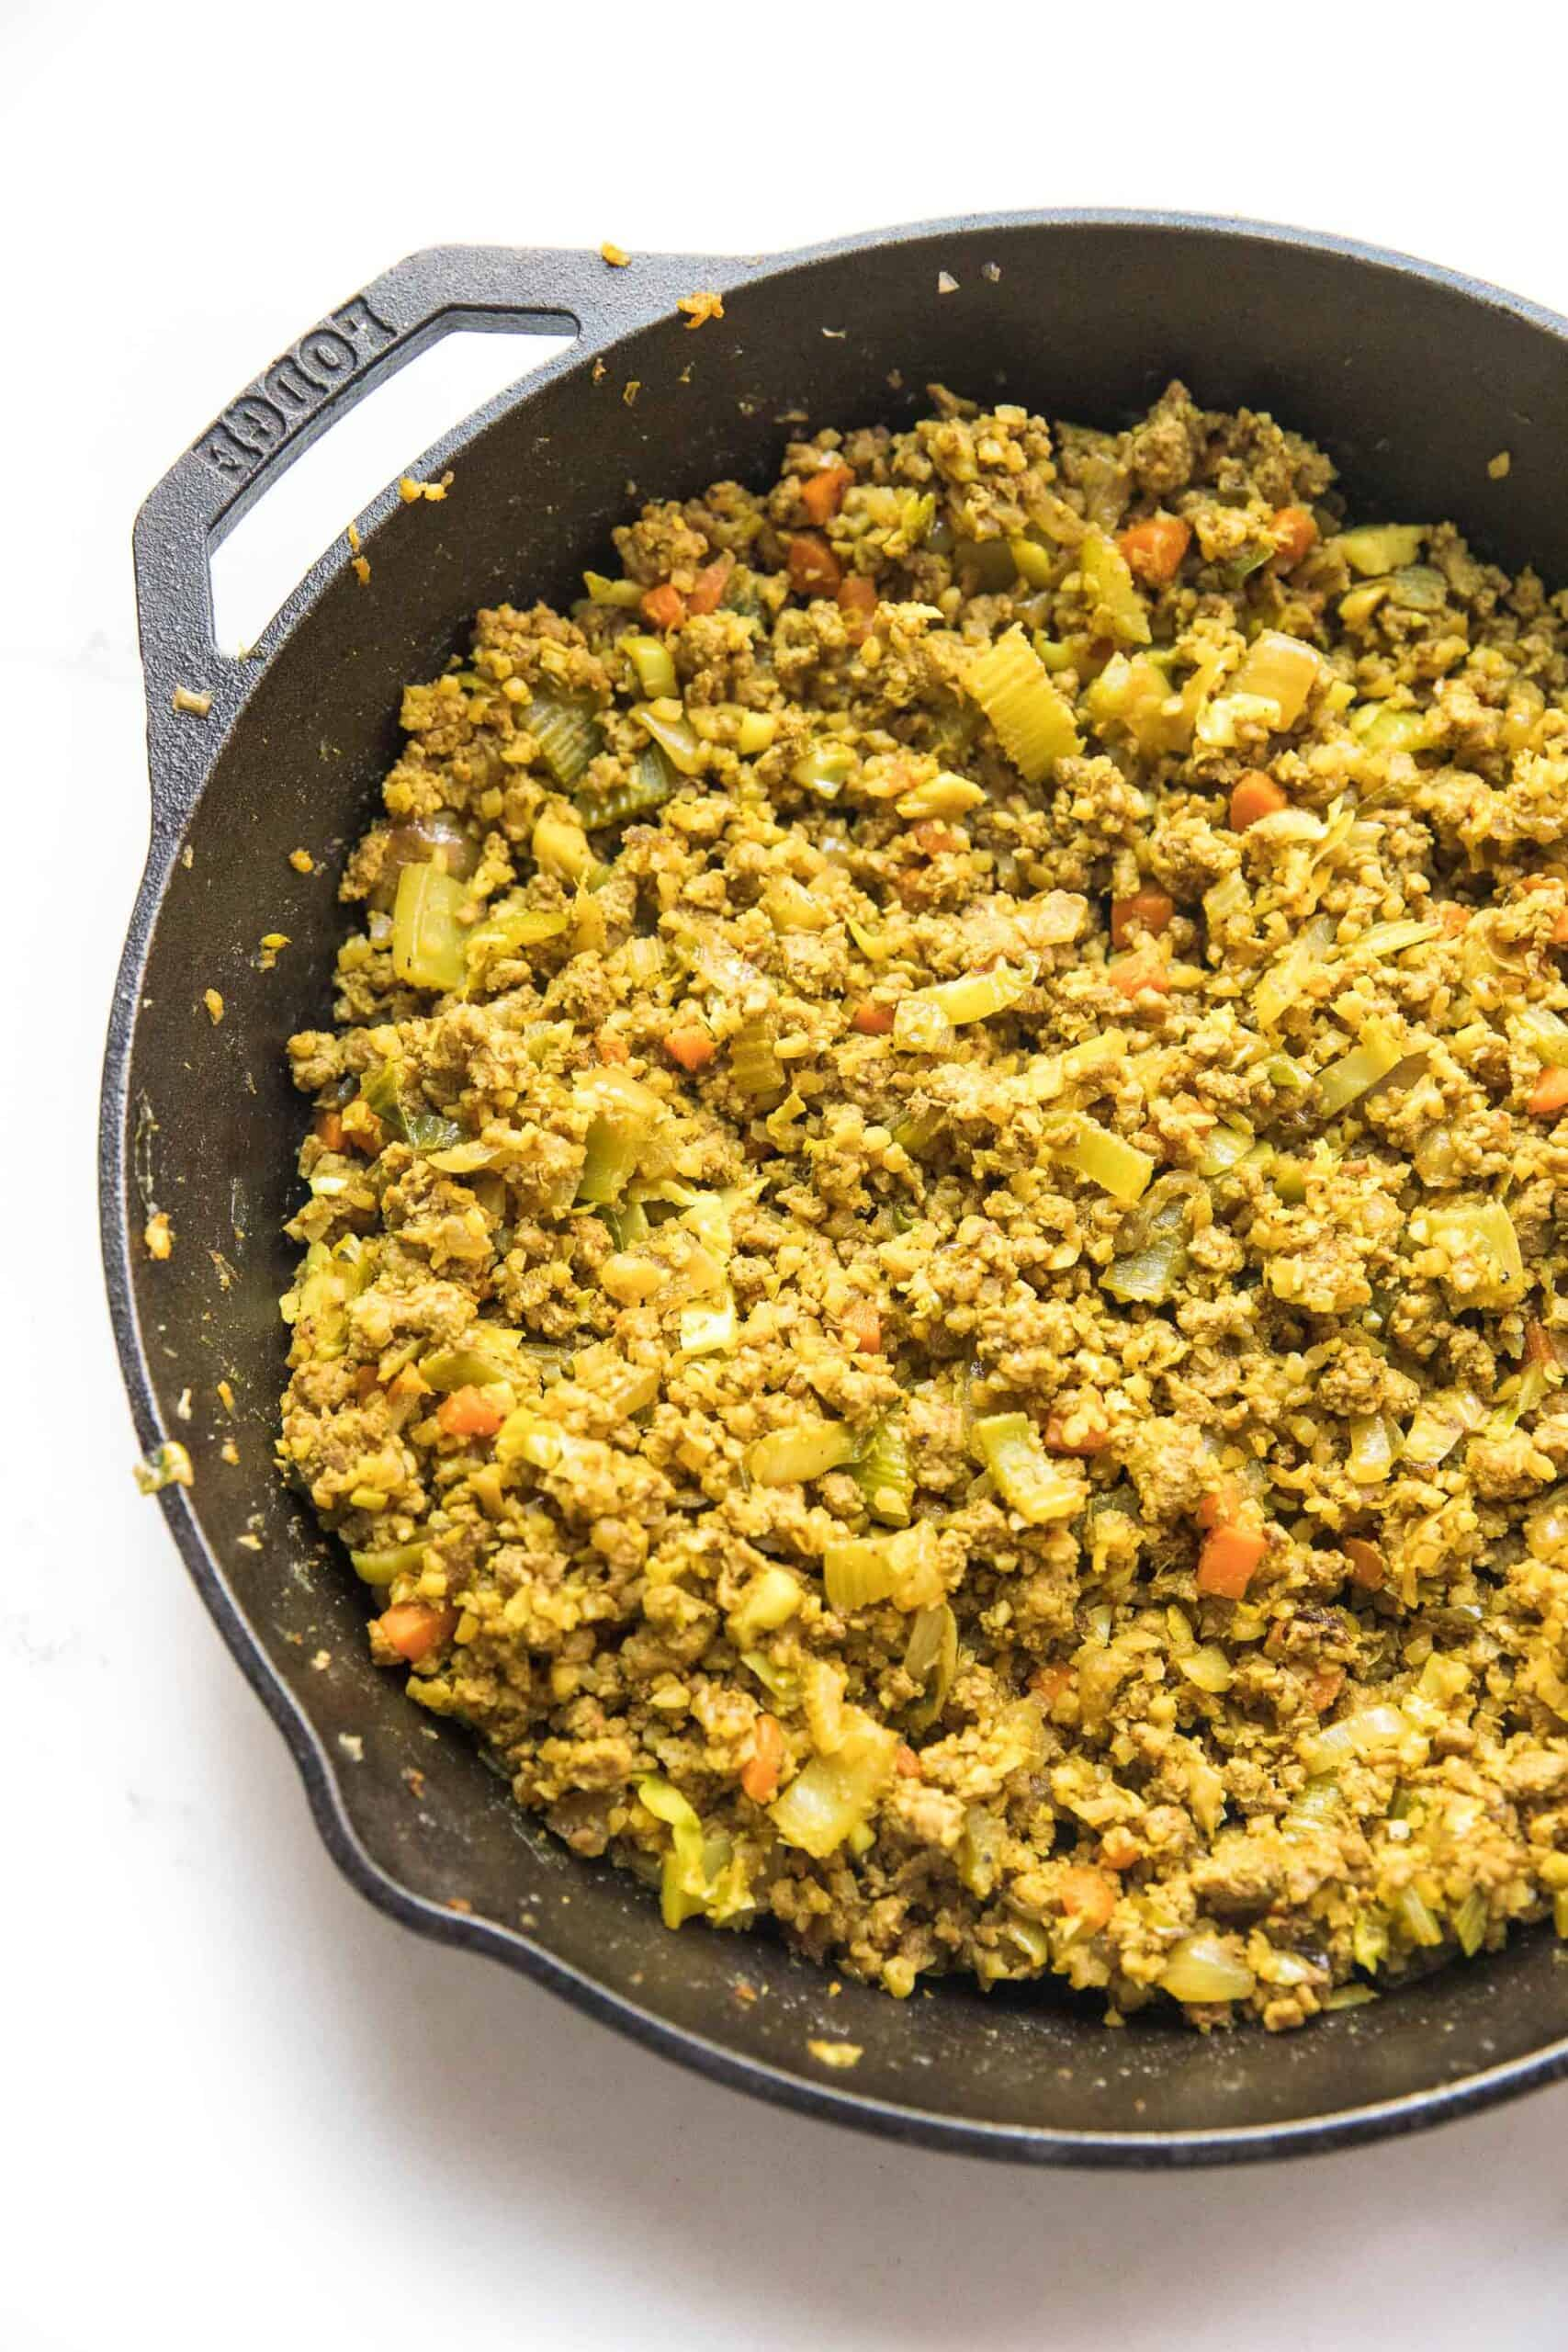 Curry lettuce wraps filling in a cast iron skillet